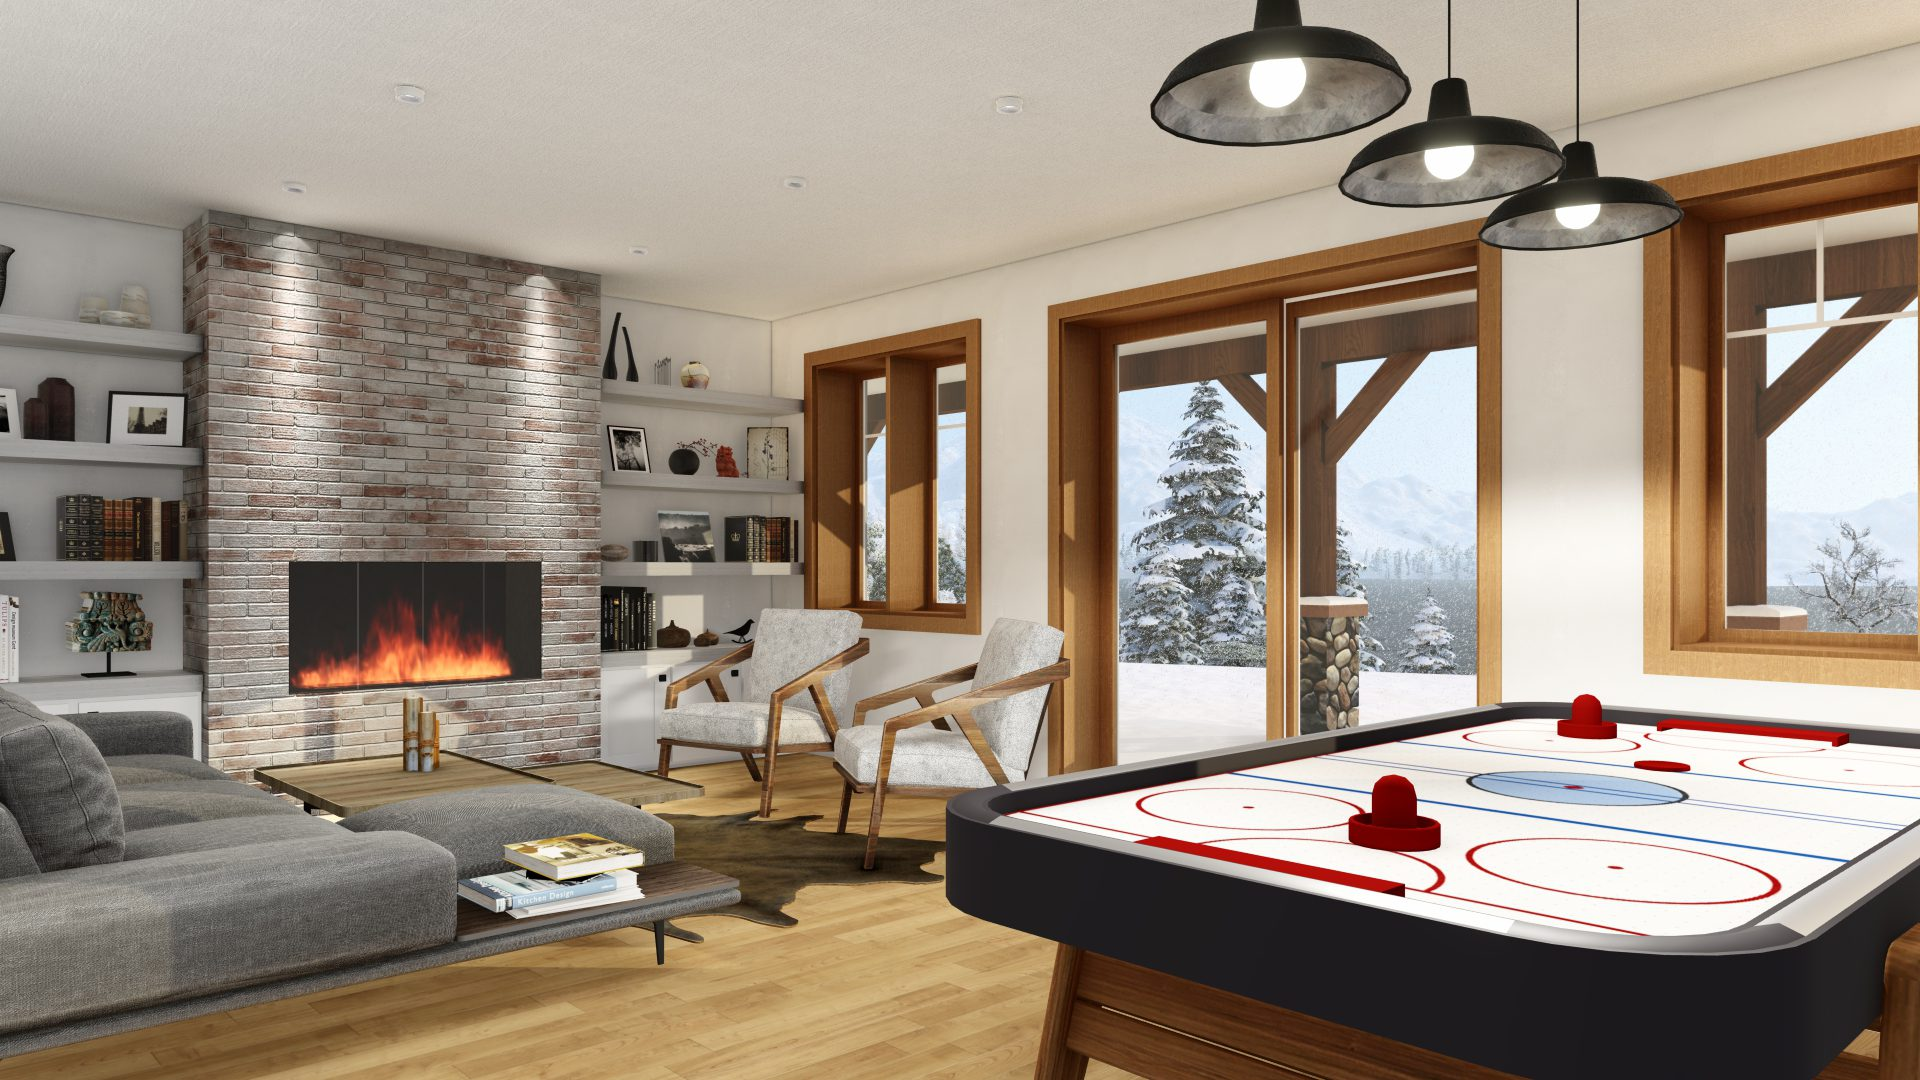 Timber Frame Open Concept House Plans   The Rouge   Normerica   Interior, Basement, Walkout, Recreation Room, Games Room